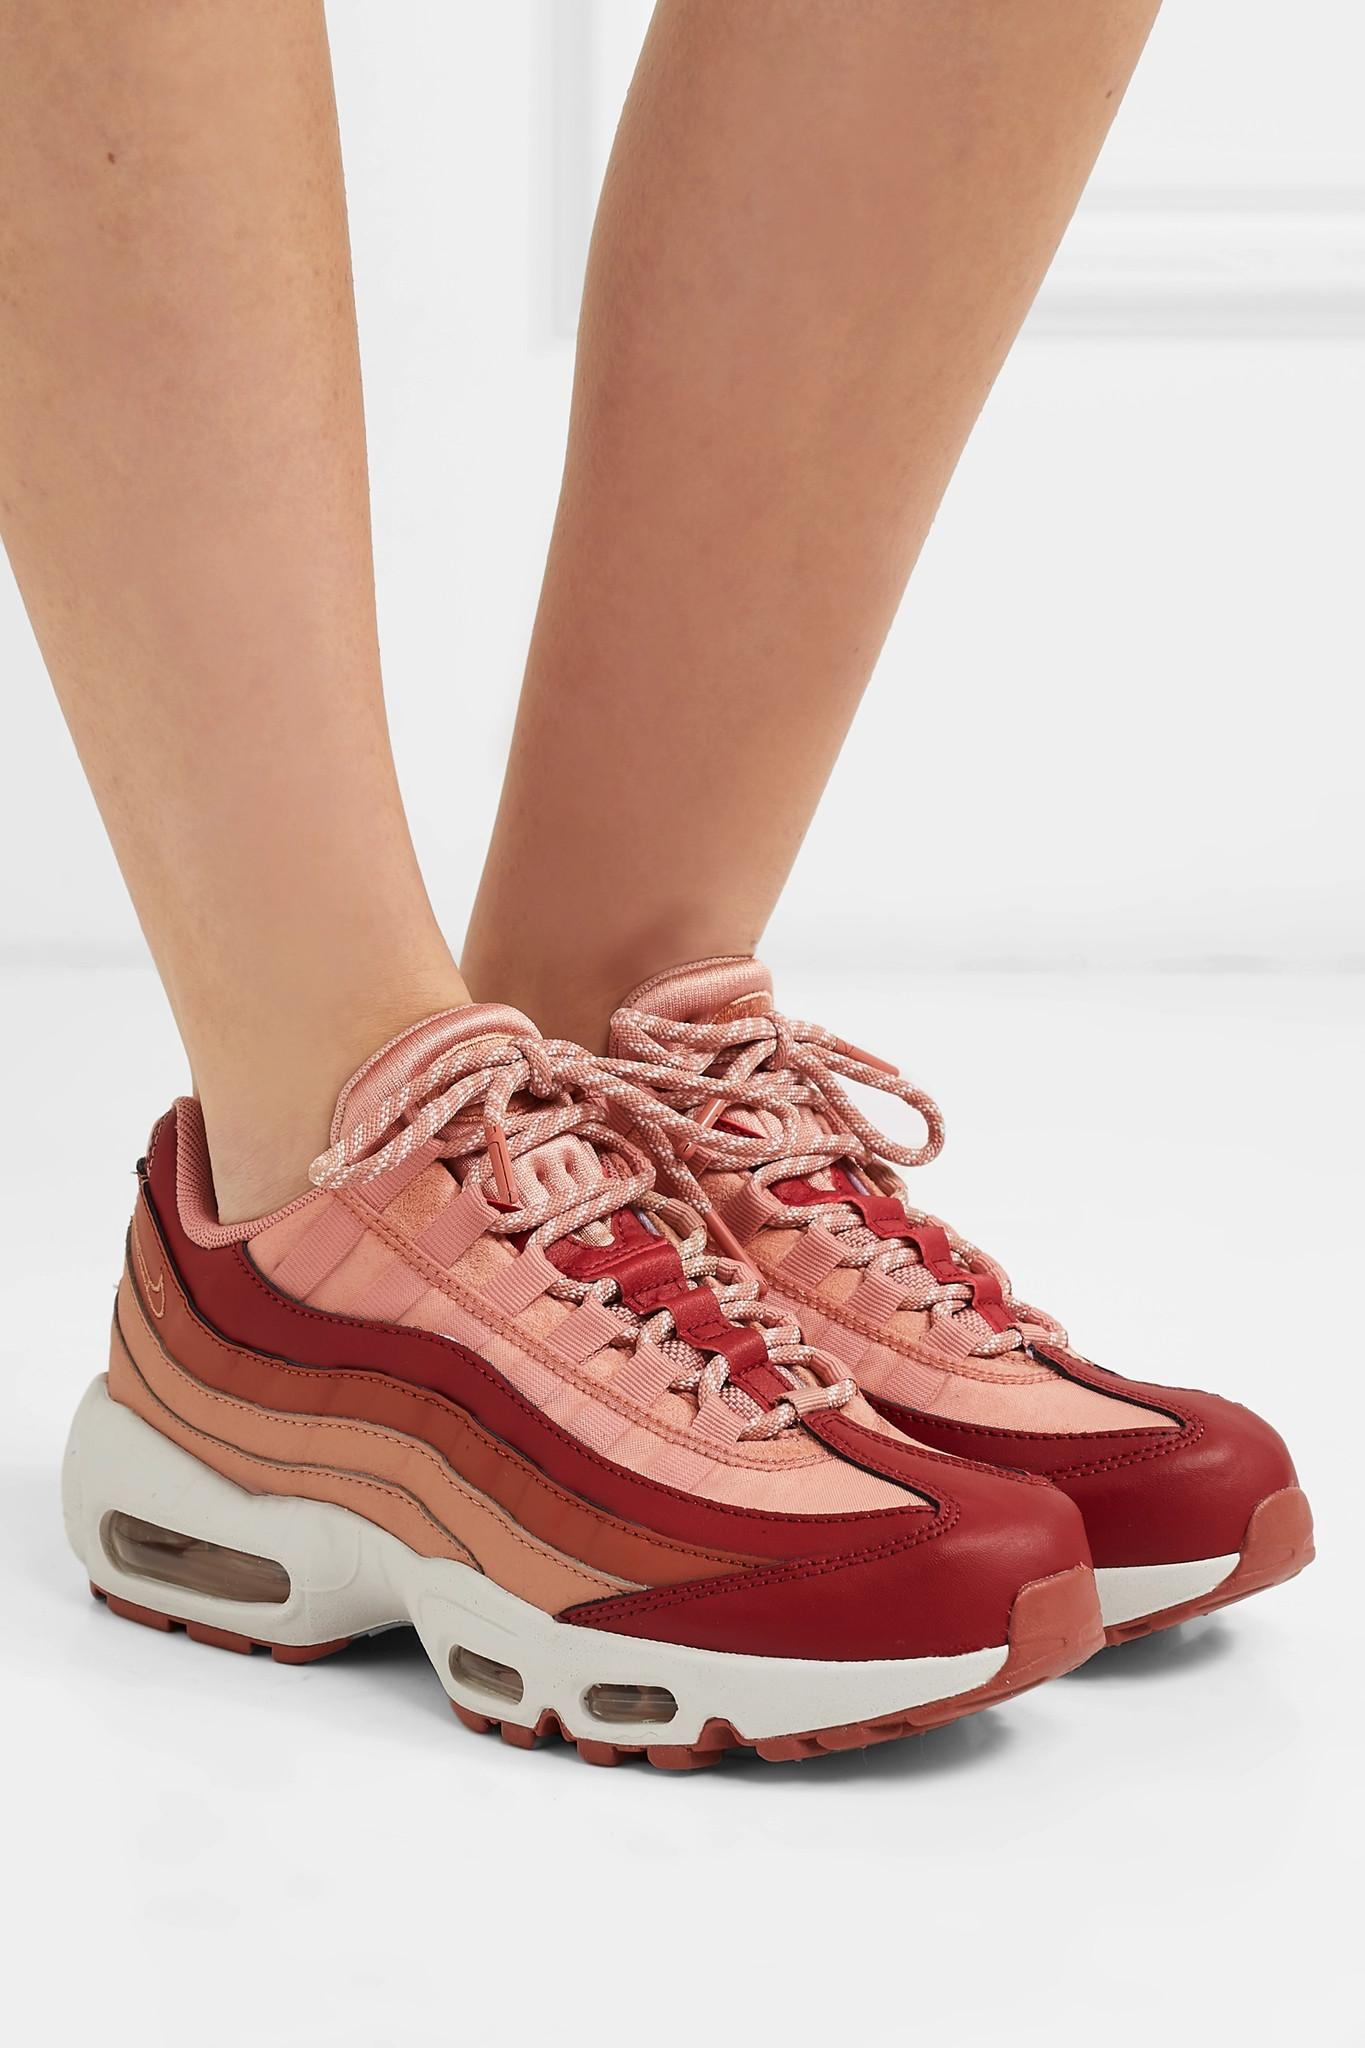 fac64e91b1 Nike - Multicolor Air Max 95 Suede And Leather Sneakers - Lyst. View  fullscreen